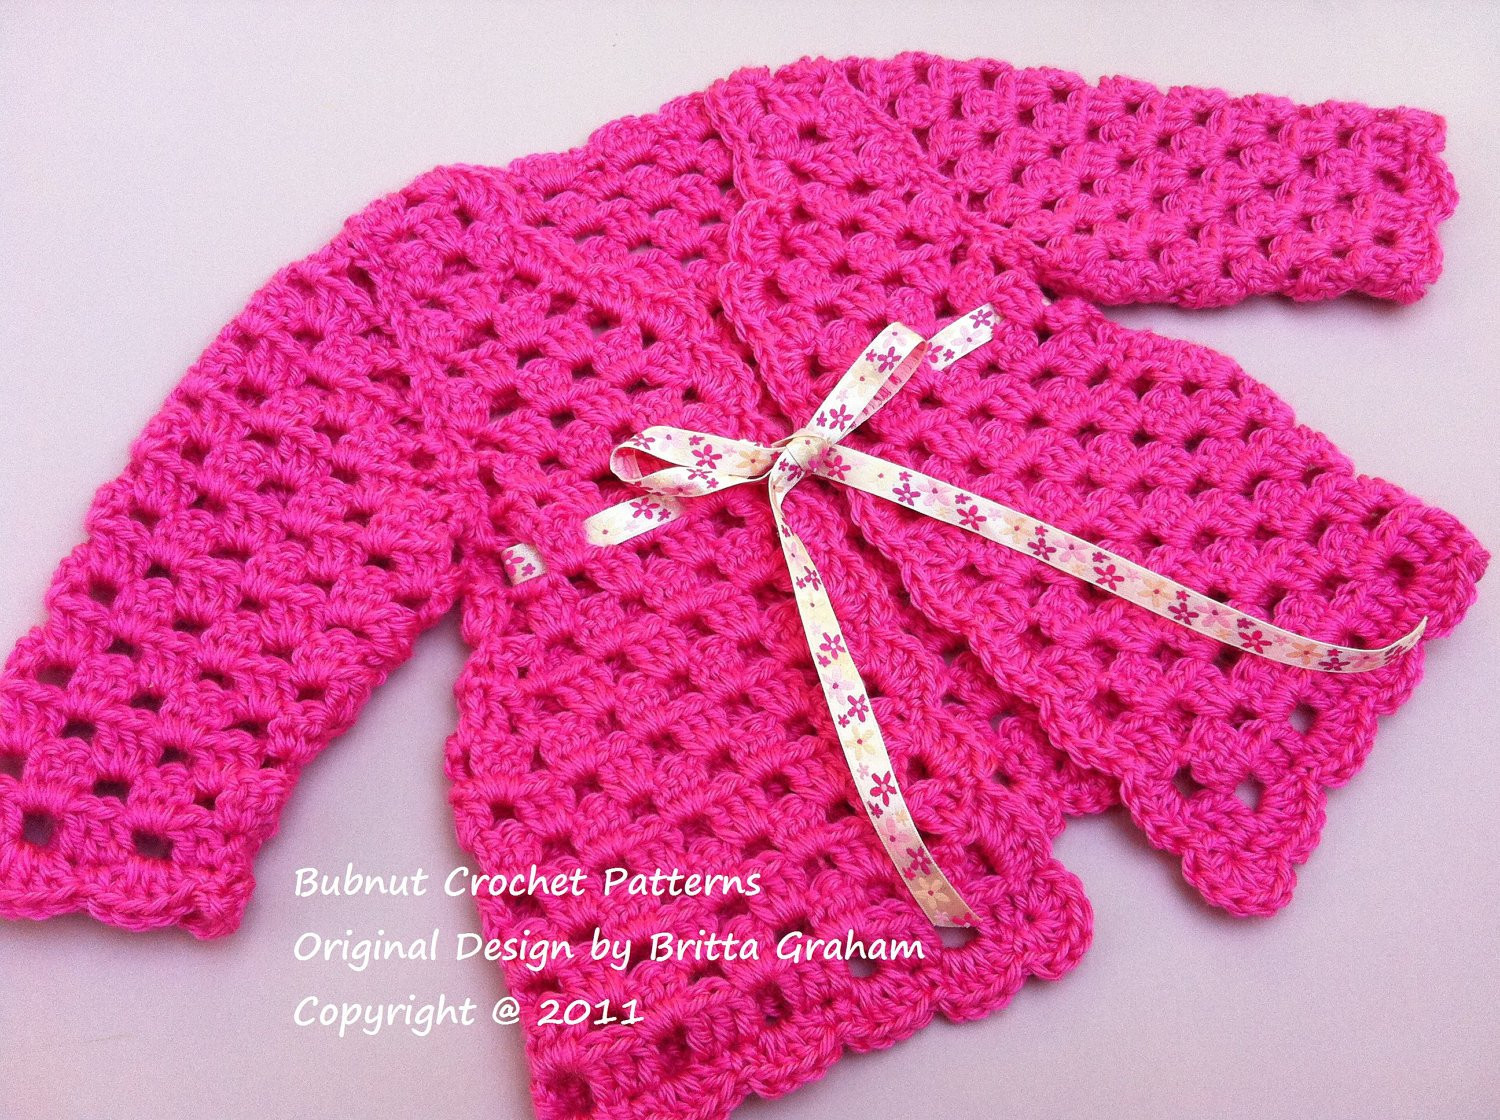 Elegant Crochet Baby Cardigan Pattern Sweater Crochet Pattern No 905 Crochet Baby Sweater for Beginners Of Wonderful 41 Pictures Crochet Baby Sweater for Beginners